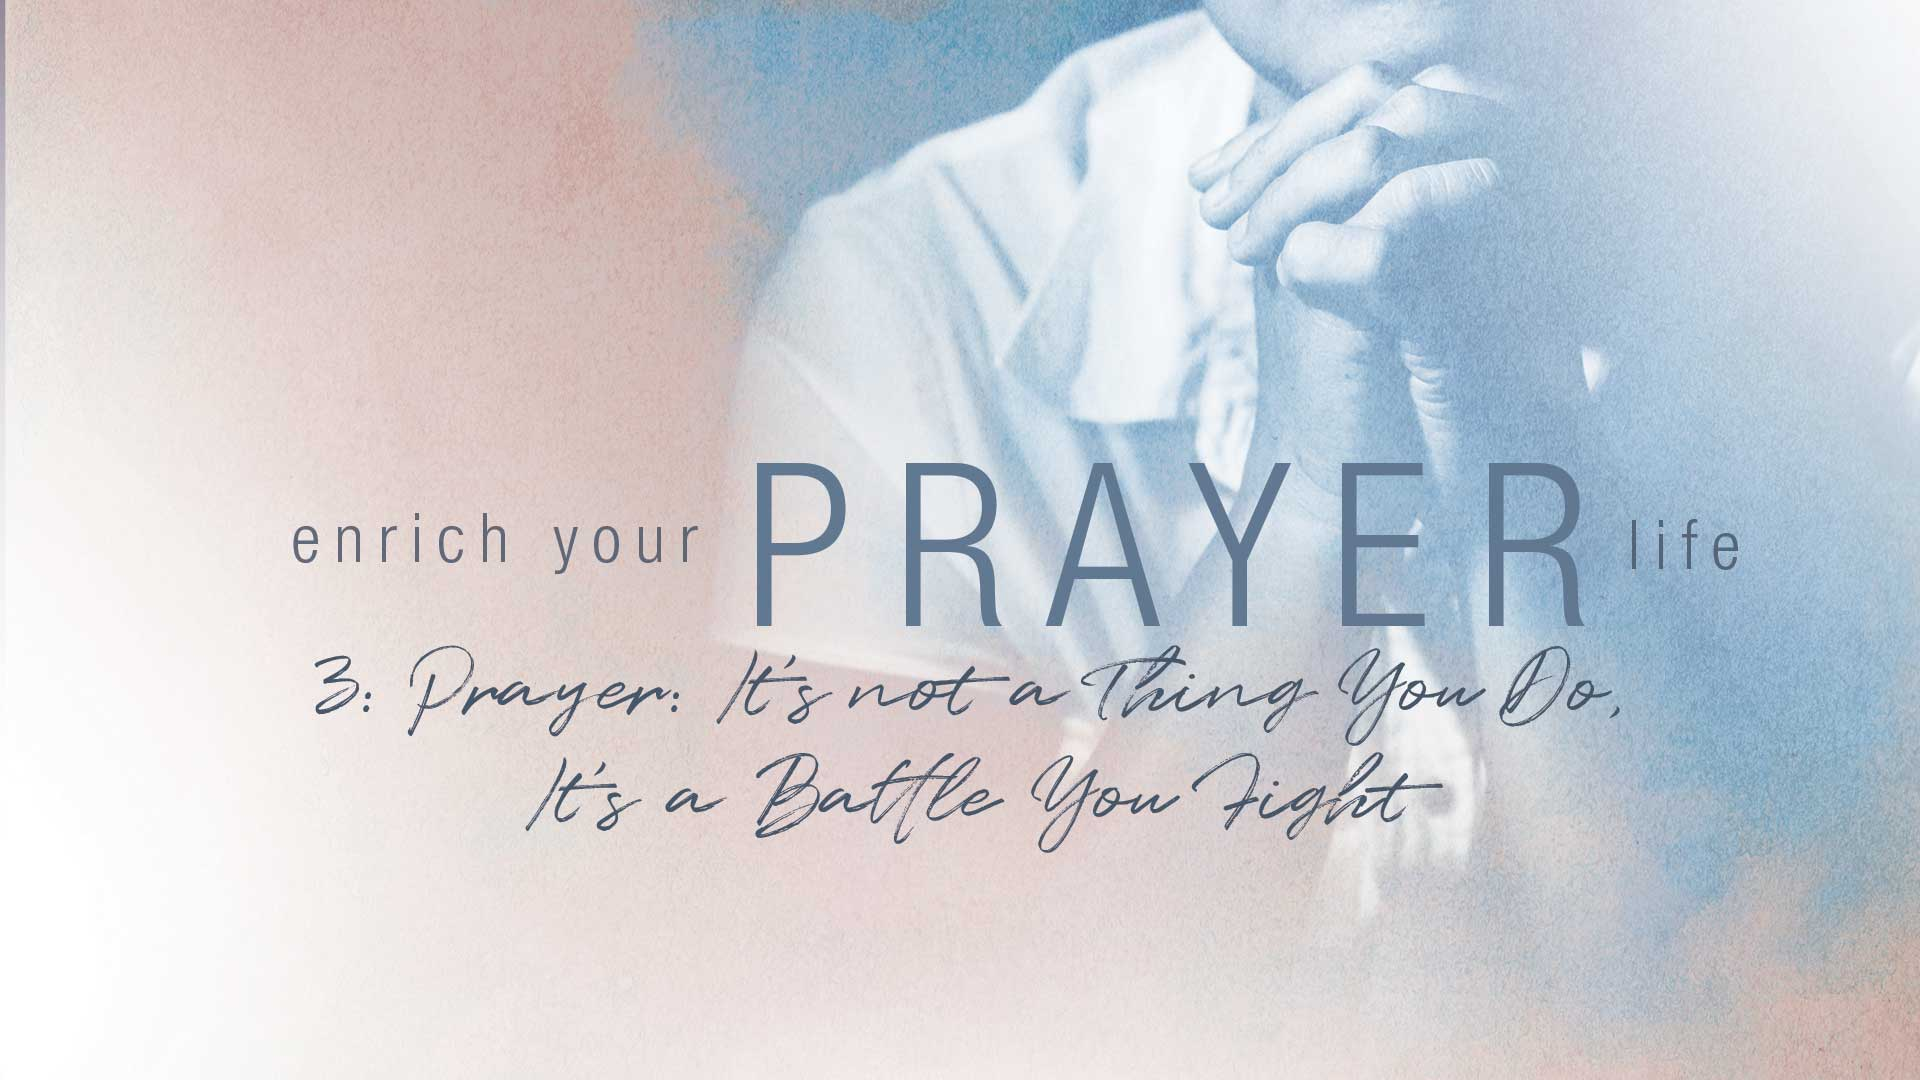 Prayer Is Not A Thing You Do, It's A Battle You Fight